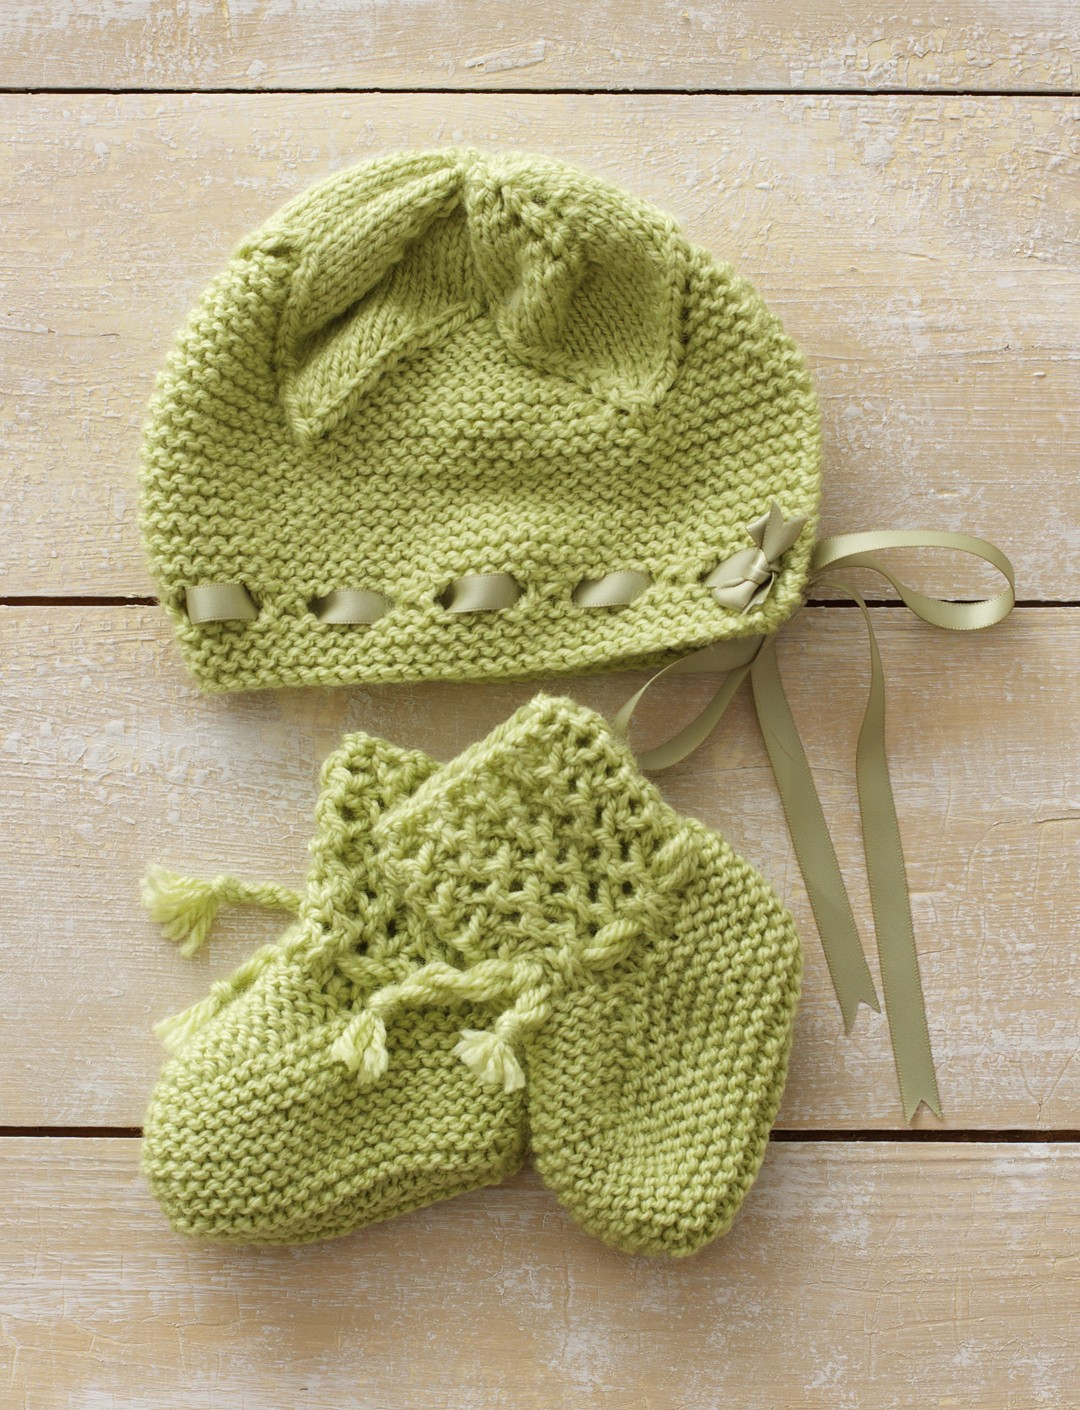 Knitting Patterns Leaf Lace : Bernat Leaf and Lace Set, Knit Pattern Yarnspirations